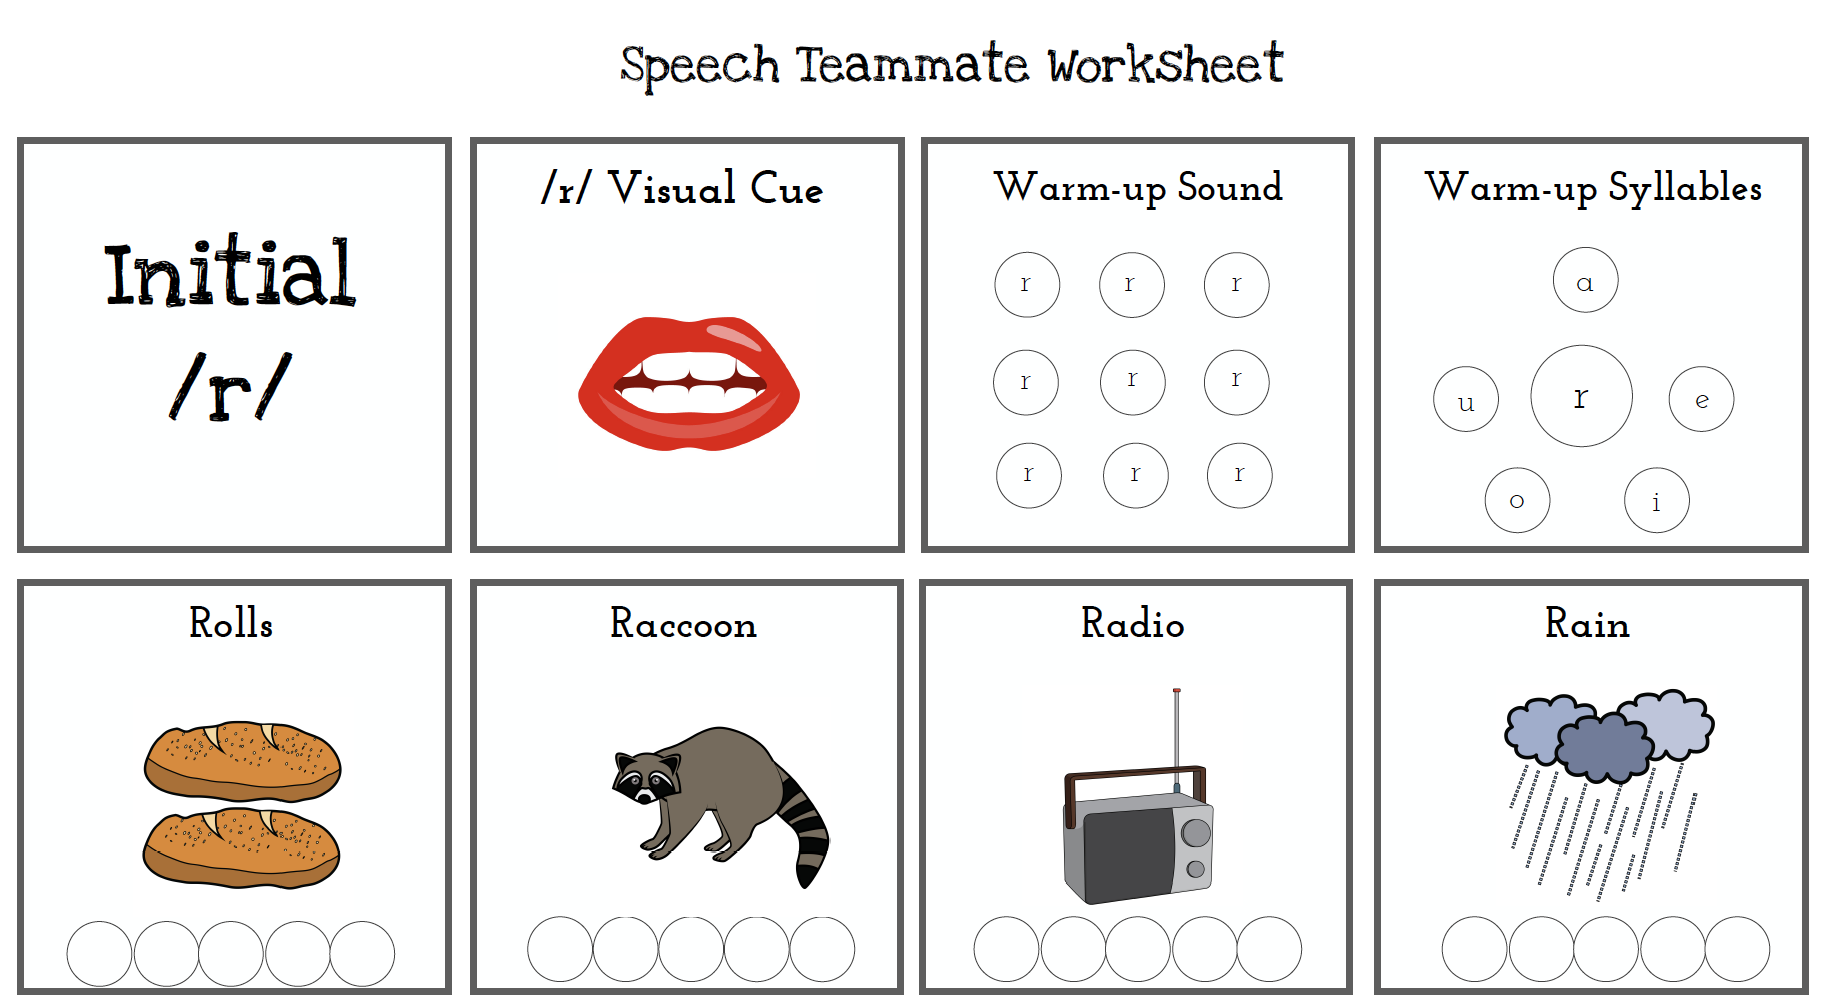 60 Free Articulation Worksheets From Speech Teammate